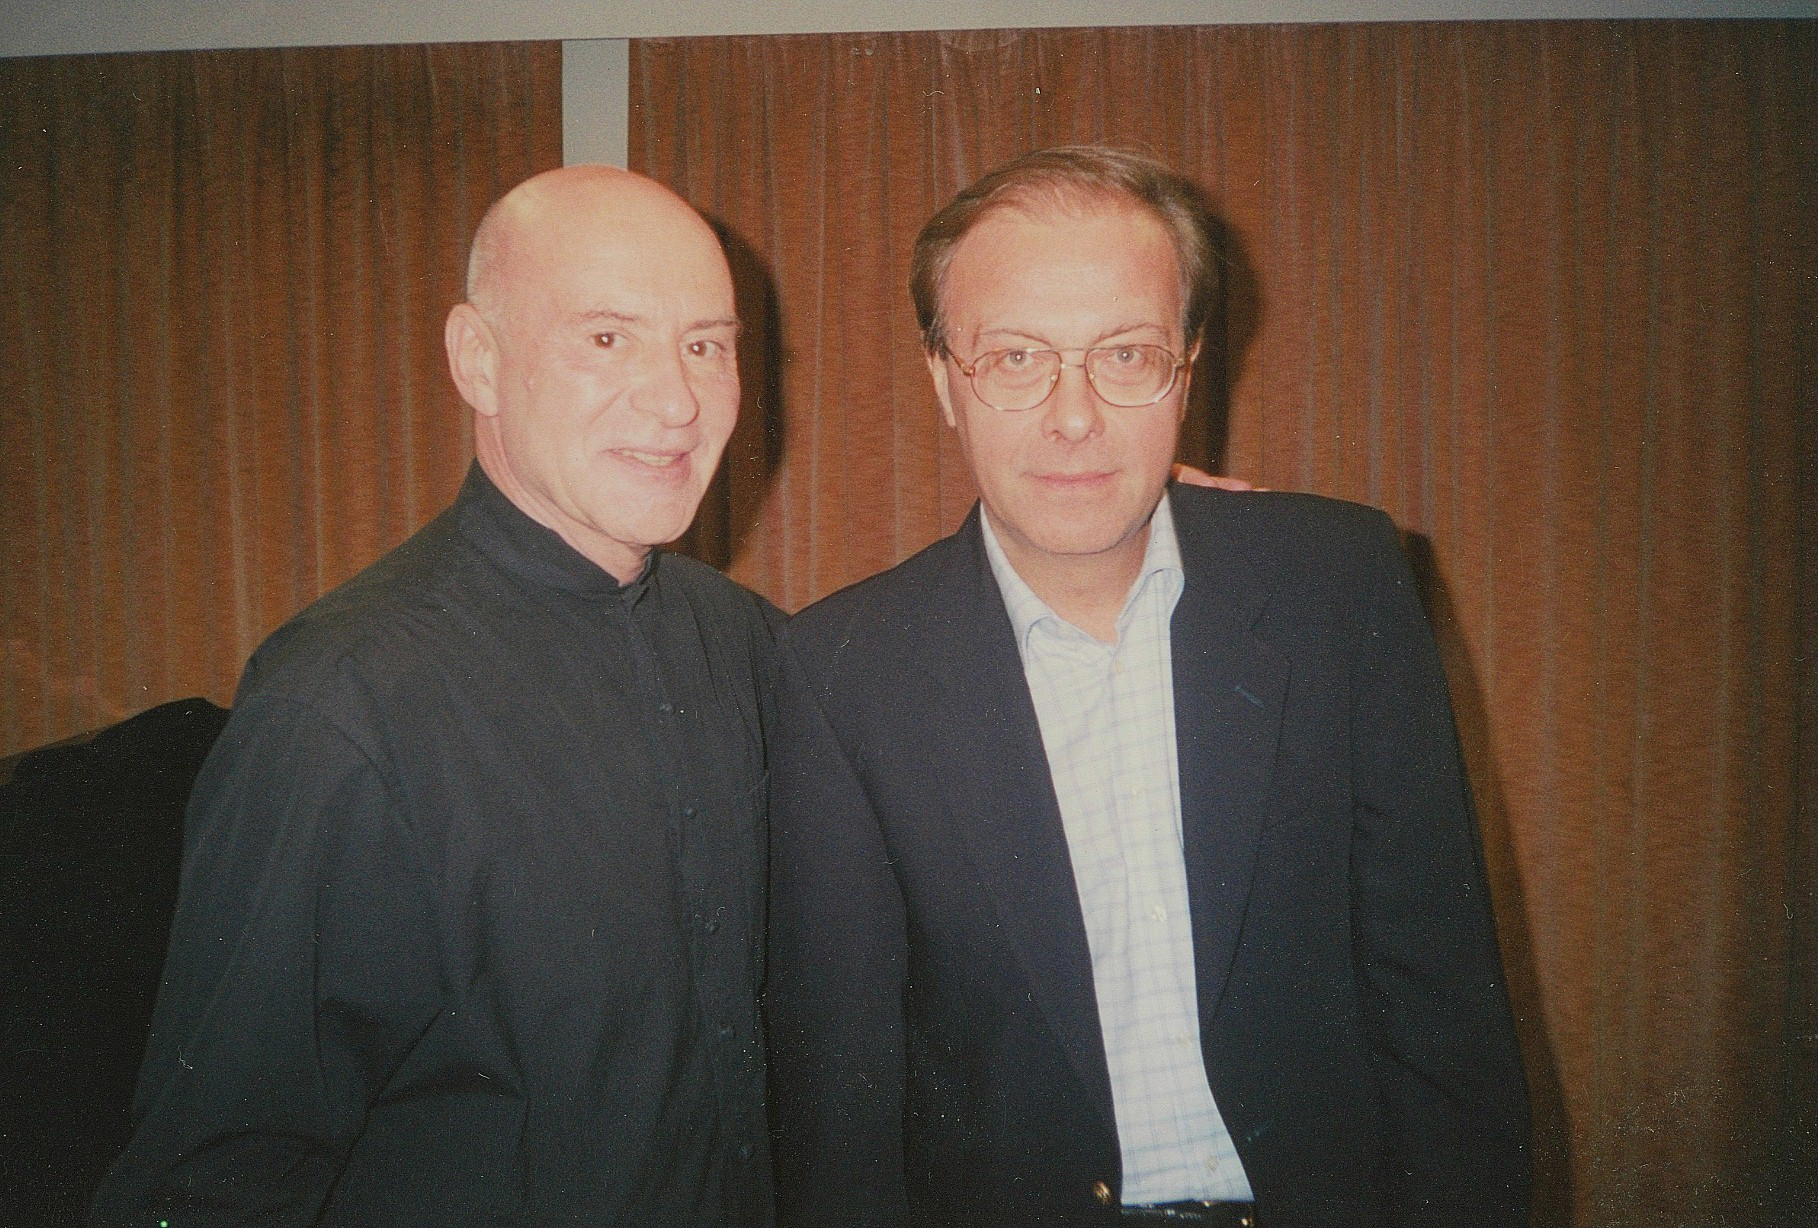 Vakarelis with Christoph Eschenbach